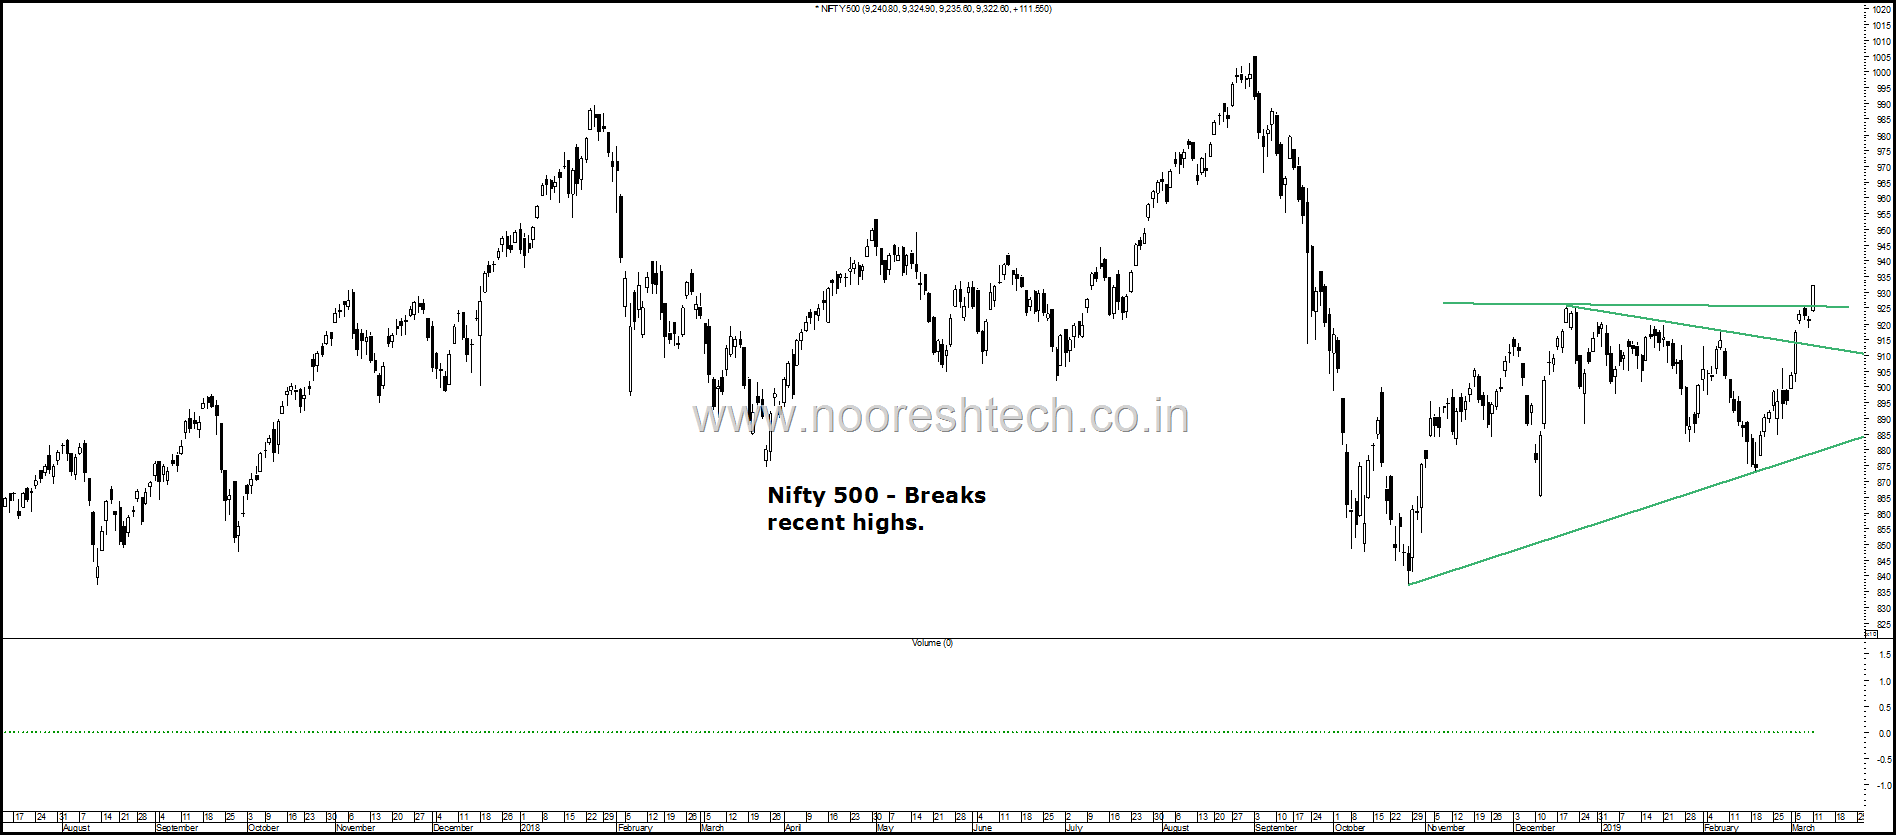 Nifty 500 highs